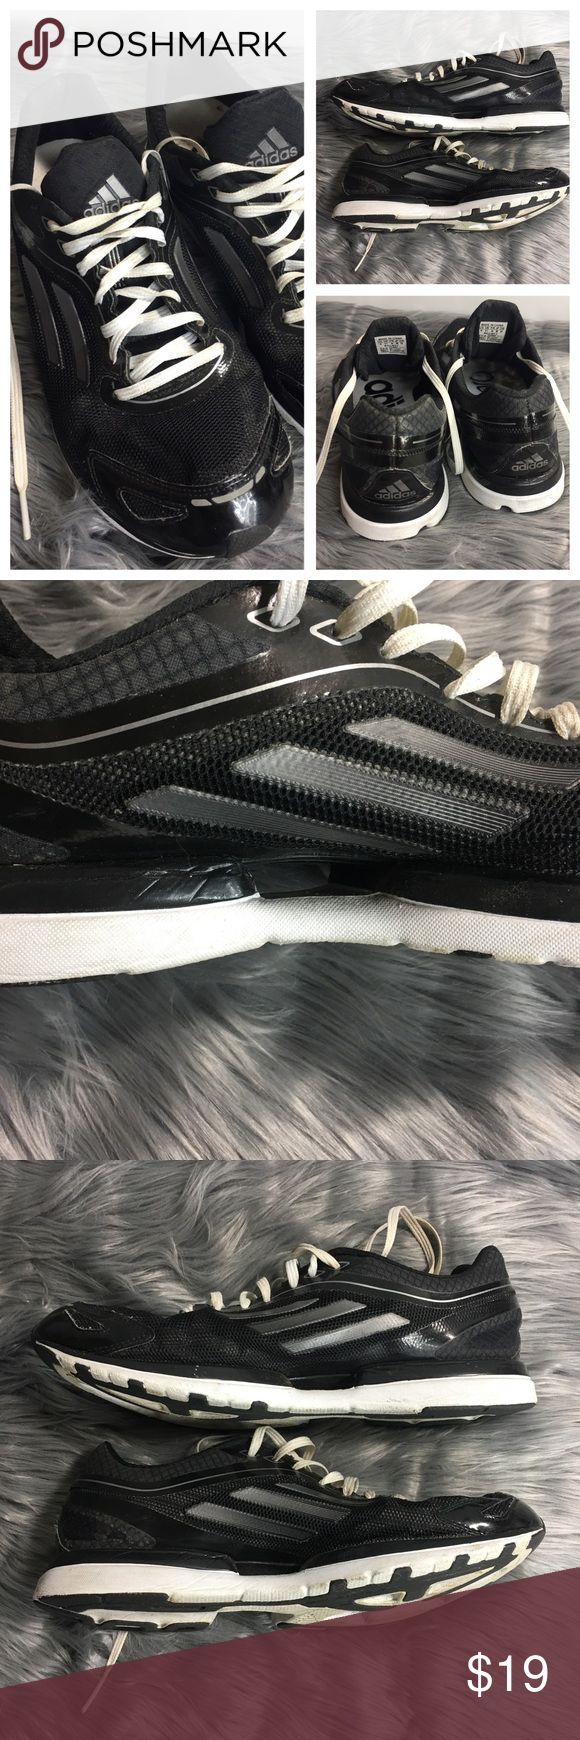 adidas Adizero Black Sz 10 Sprint Frame Running adidas Adizero Black Sz 10 Sprint Frame Lightweight Running Shoes Nice Pre-Owned Condition, Light Signs of Wear/Use Insoles are a bit Dirty, No Major Flaws, Sold as Pictured 